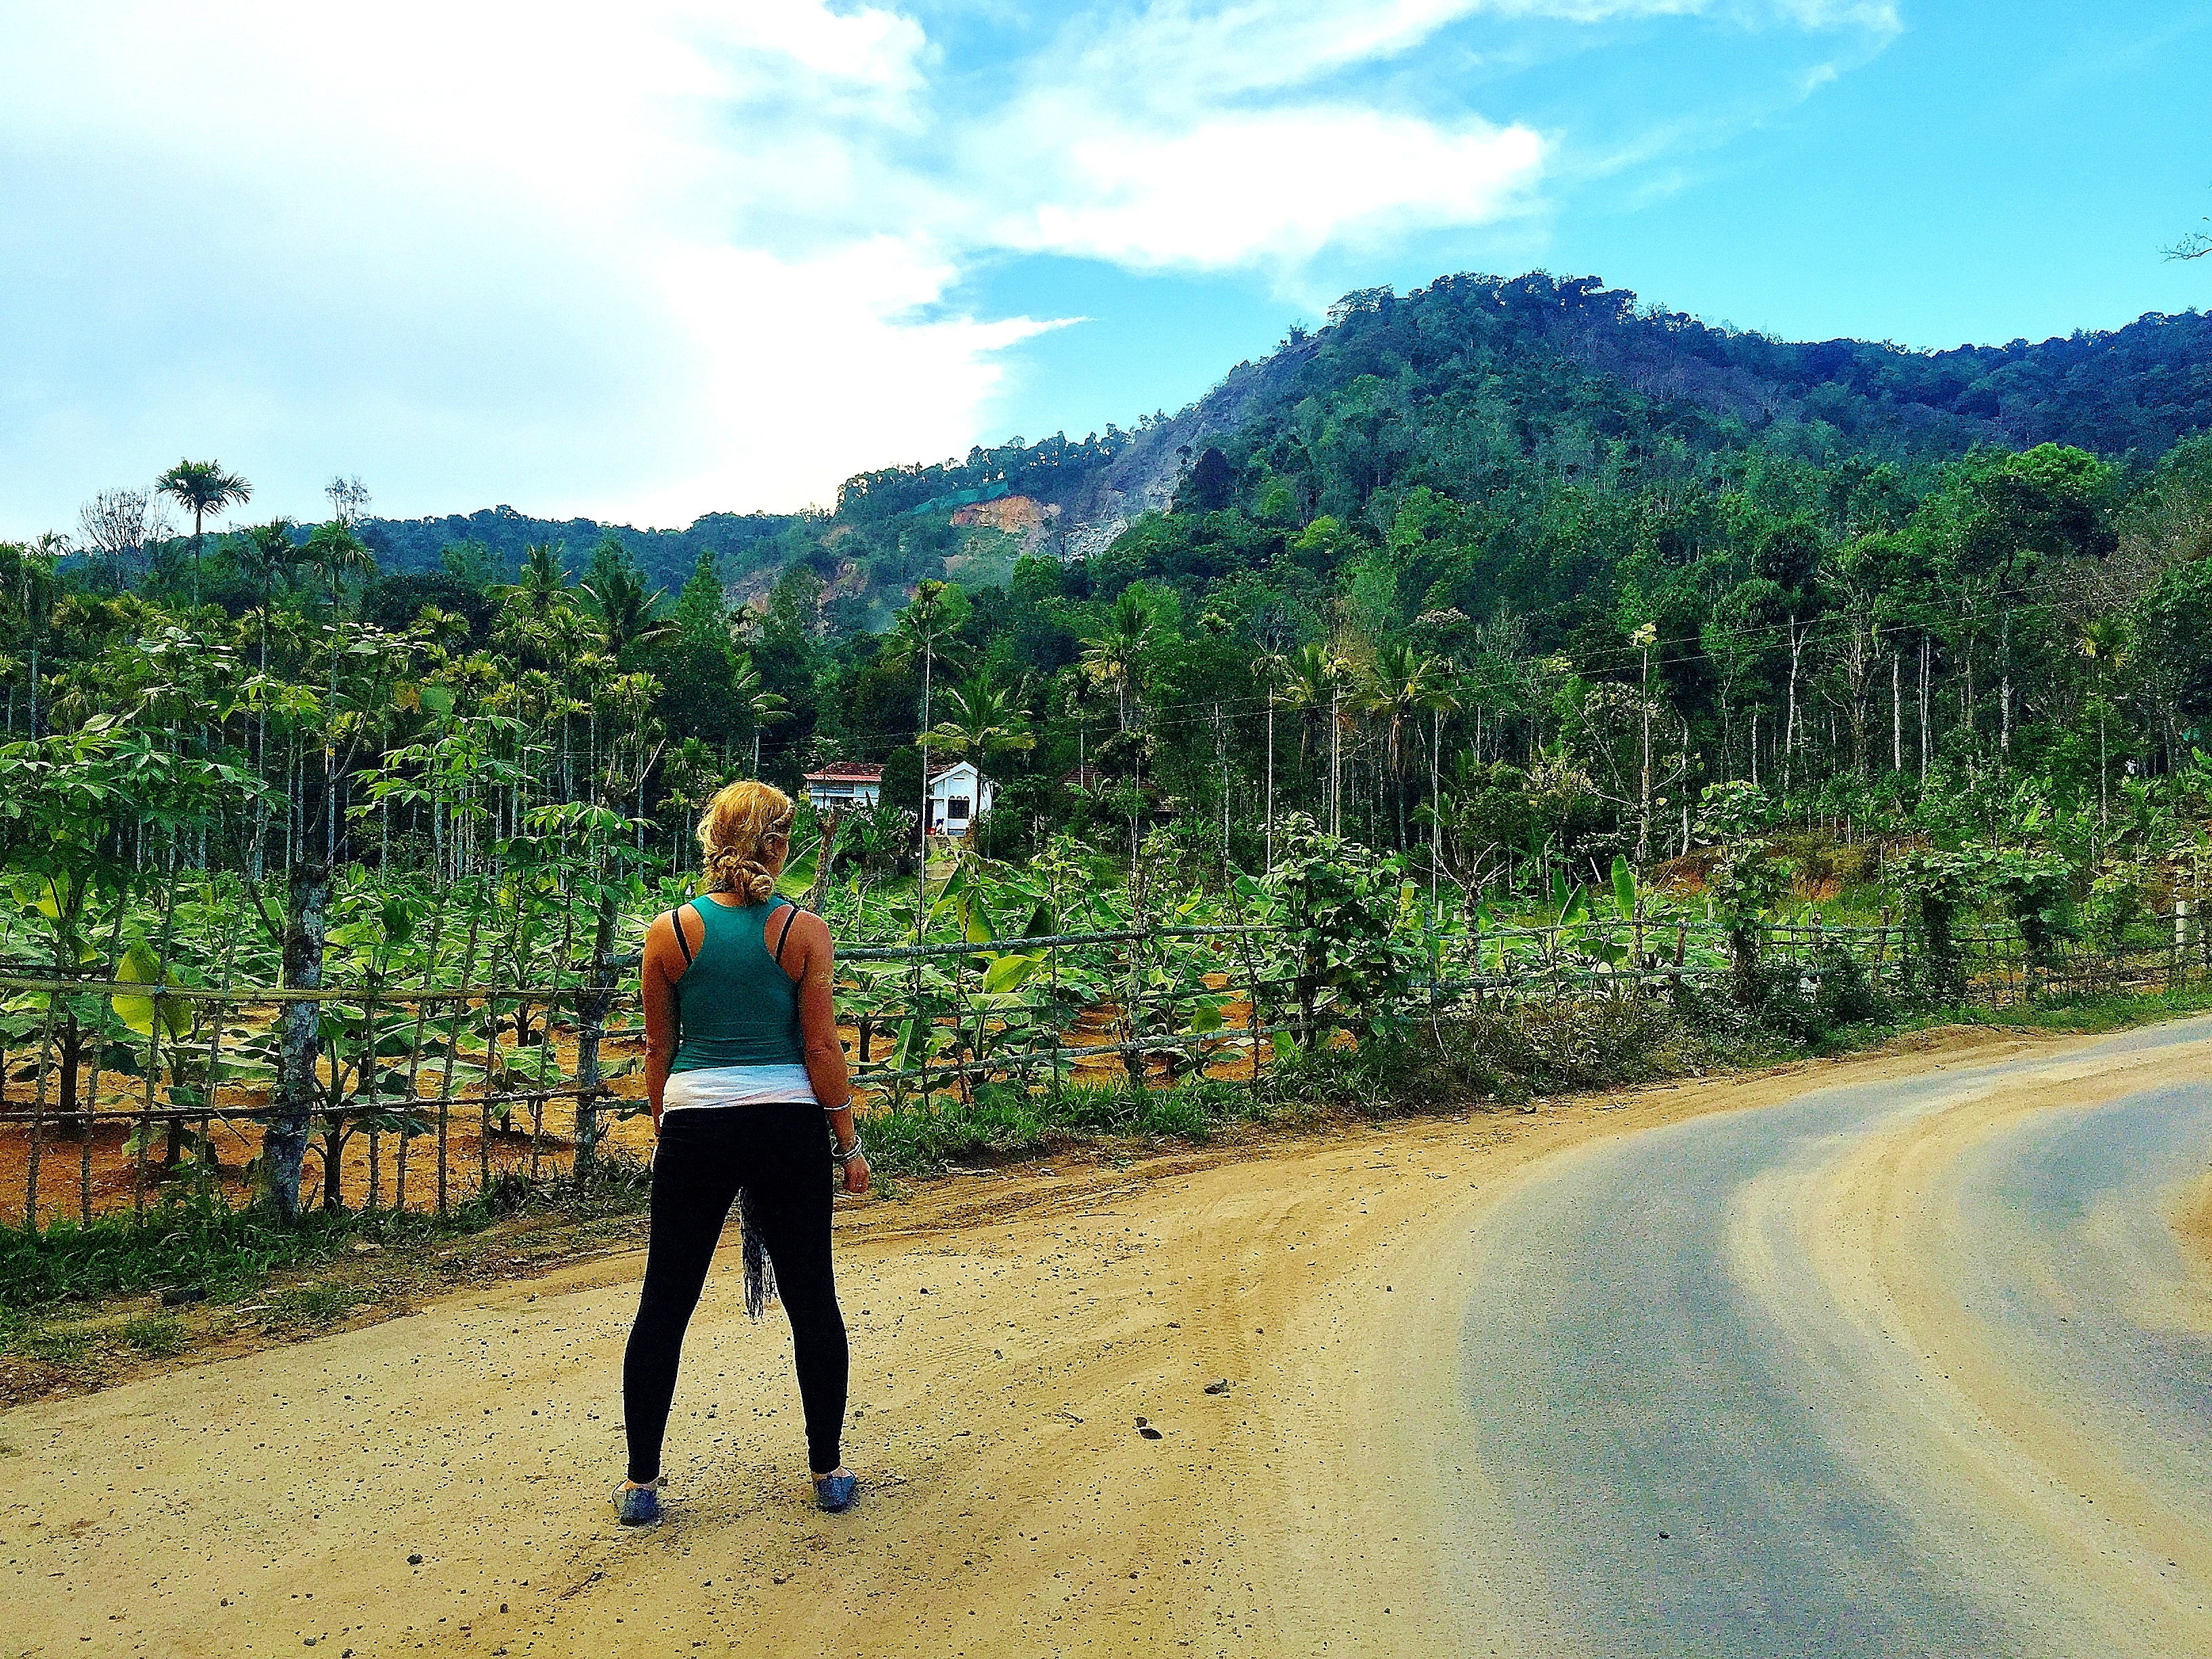 So You Want To Be A Travel Blogger? The Ugly Side Of Being A Travel Blogger